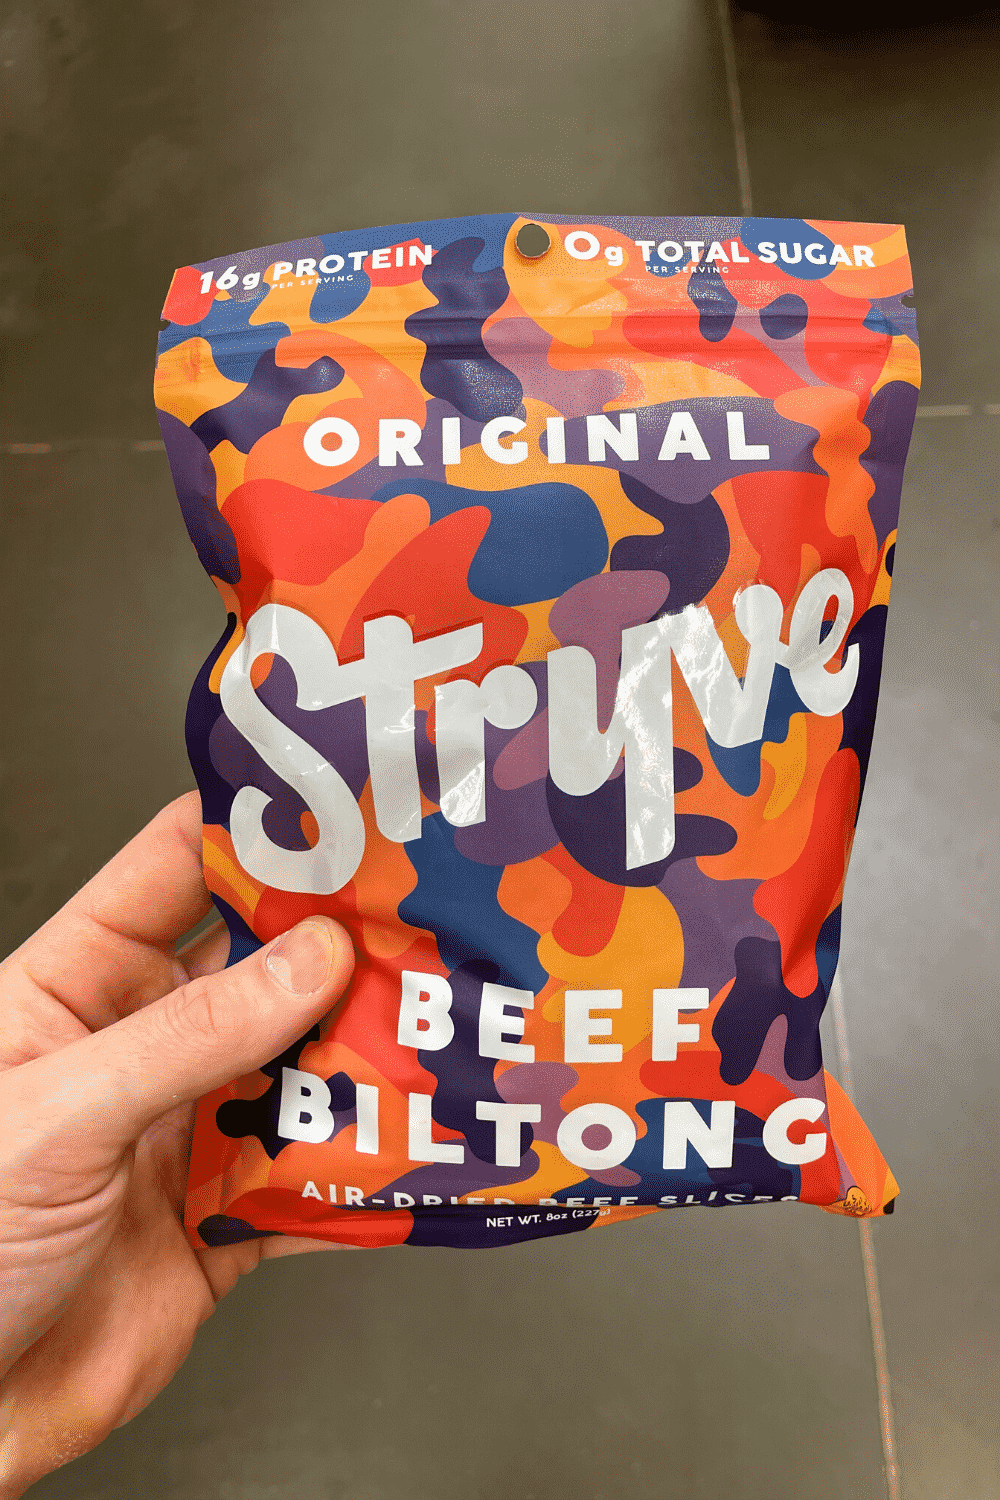 A hand holding a bag of beef biltong.